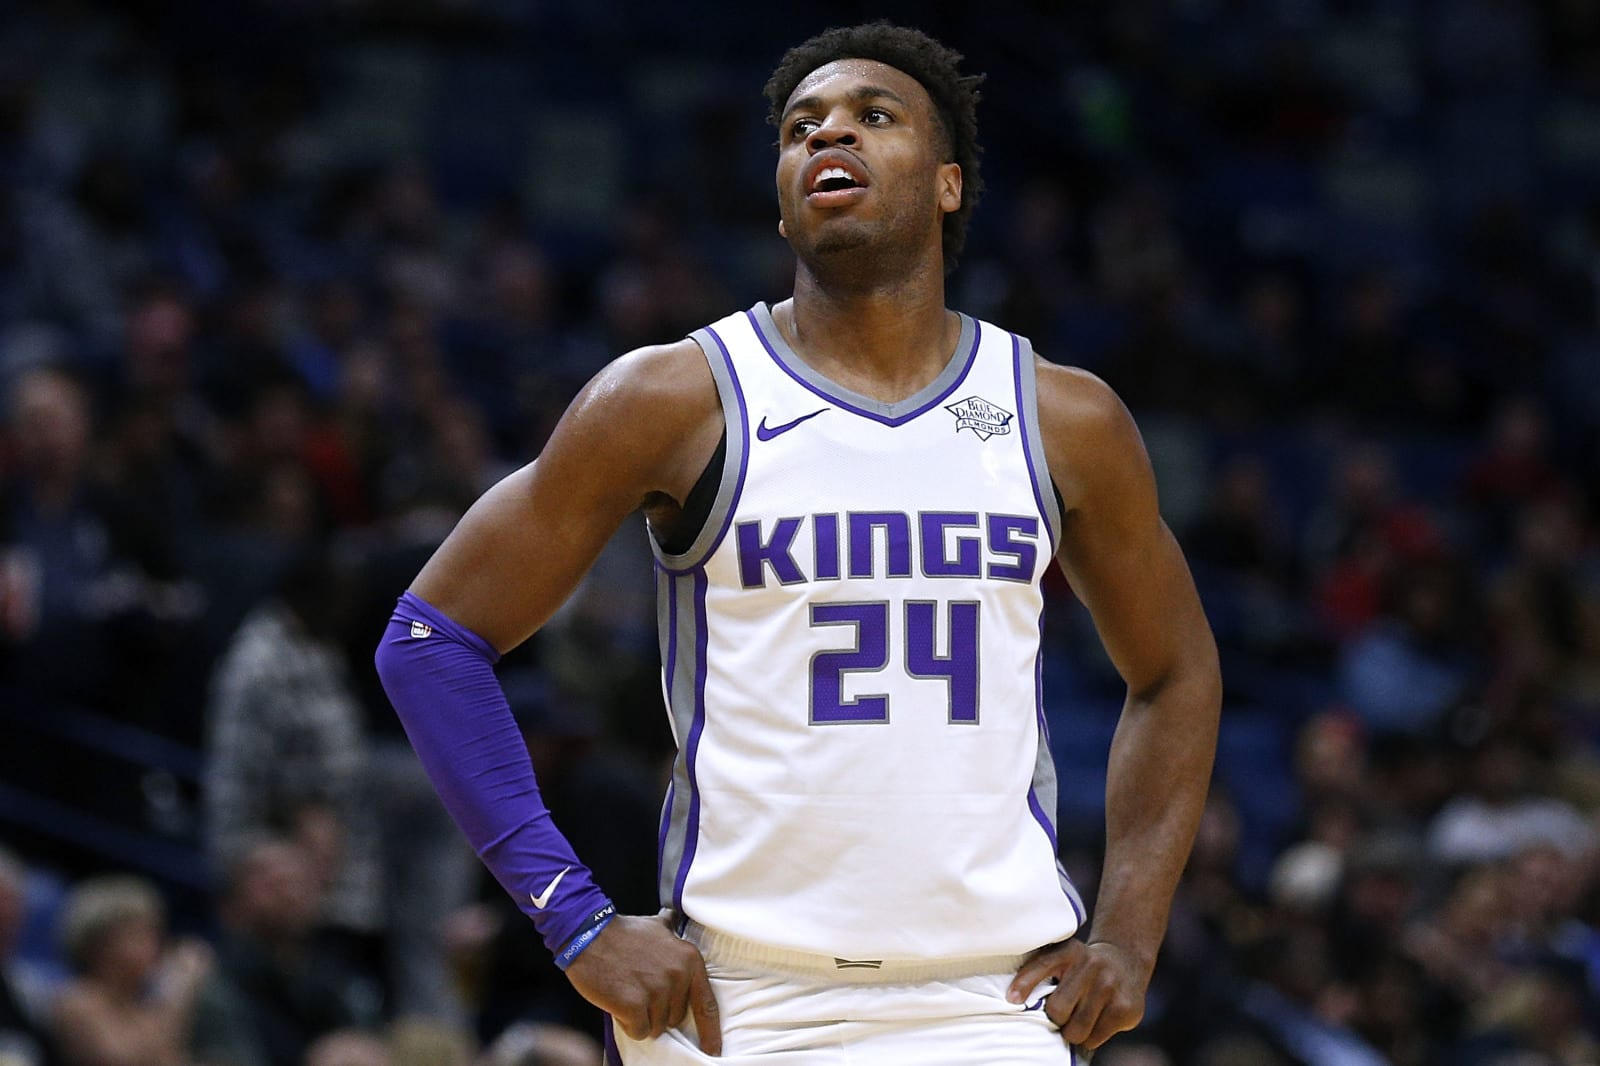 New Orleans Pelicans, Buddy Hield